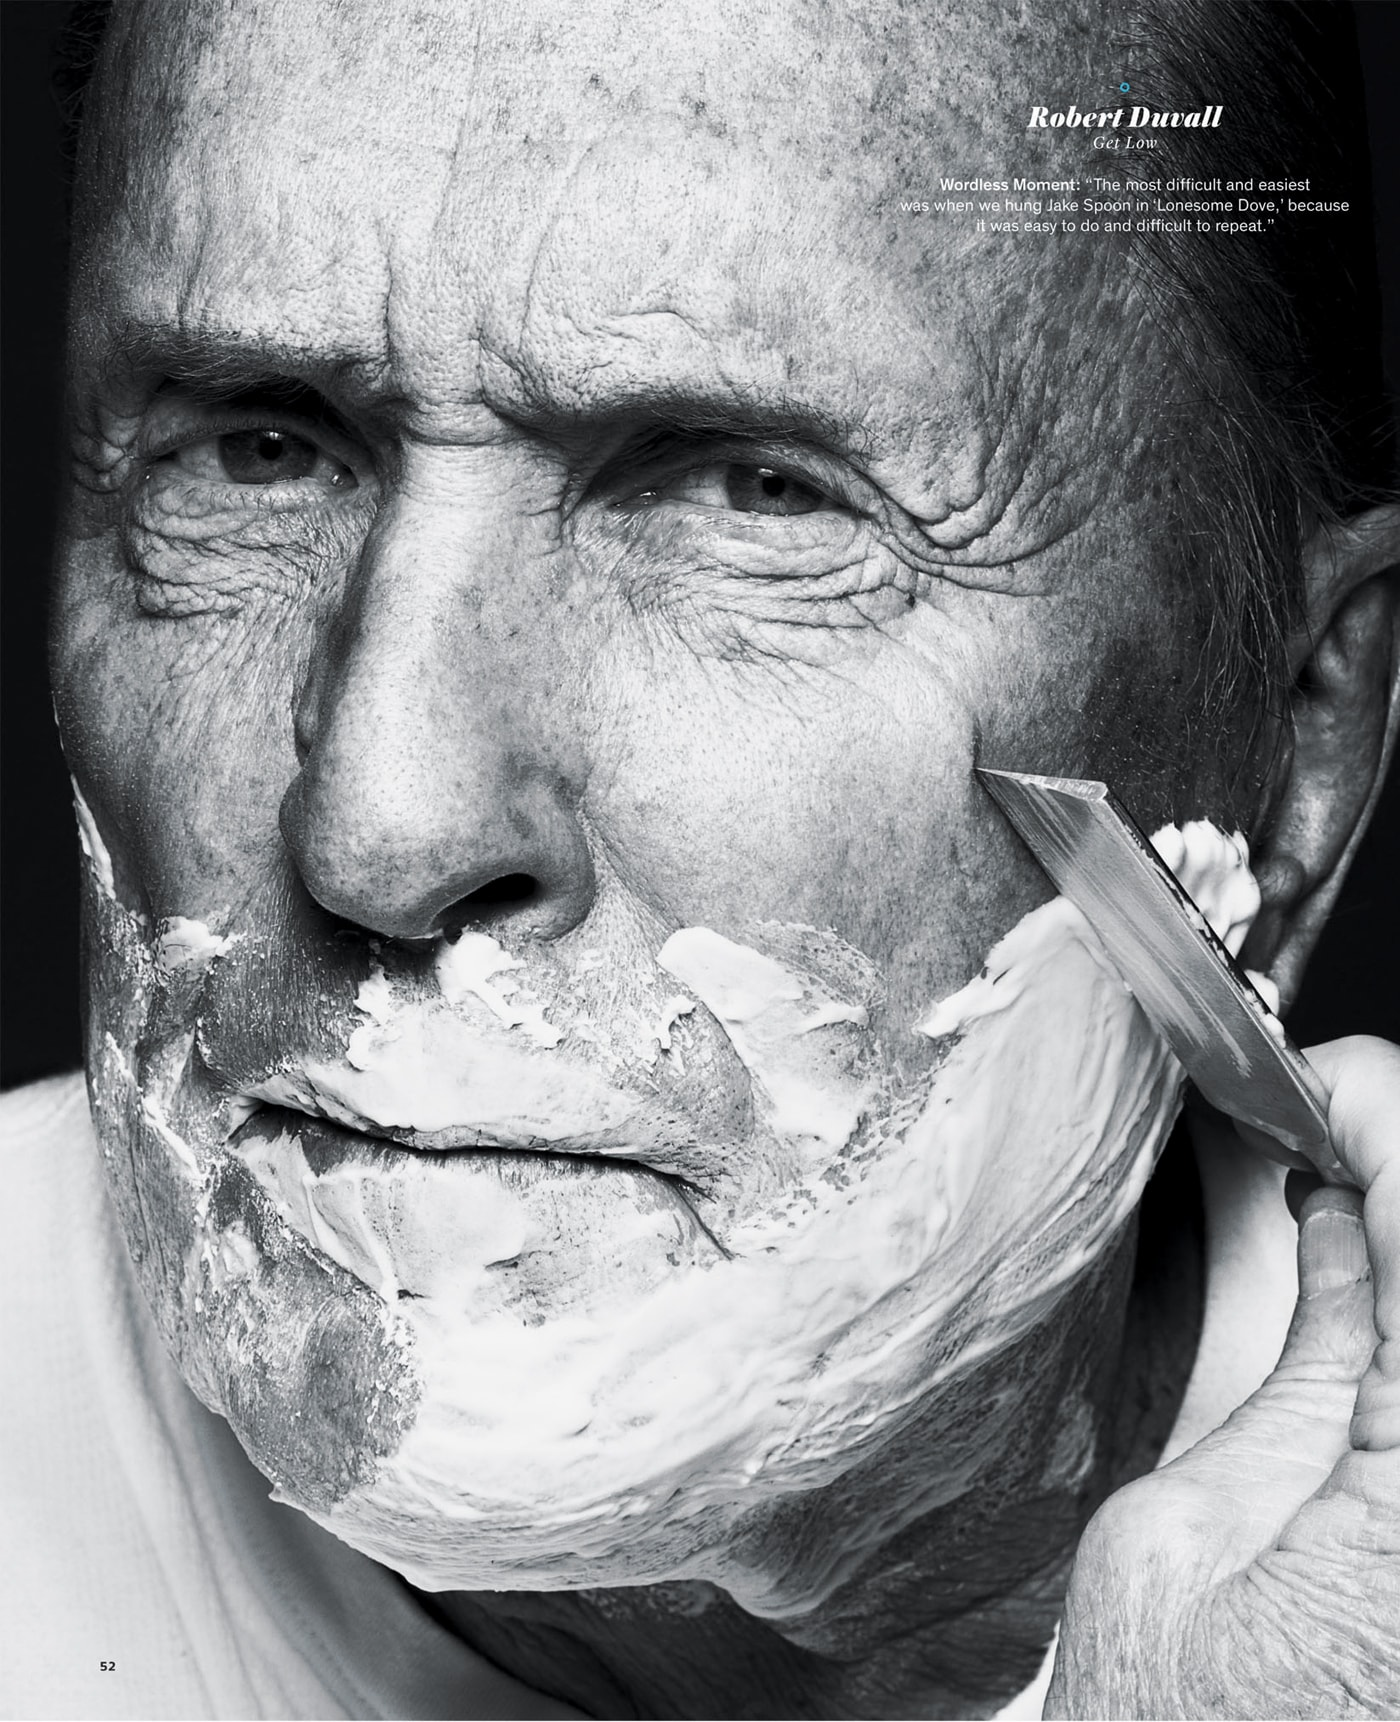 Robert Duvall For mobile